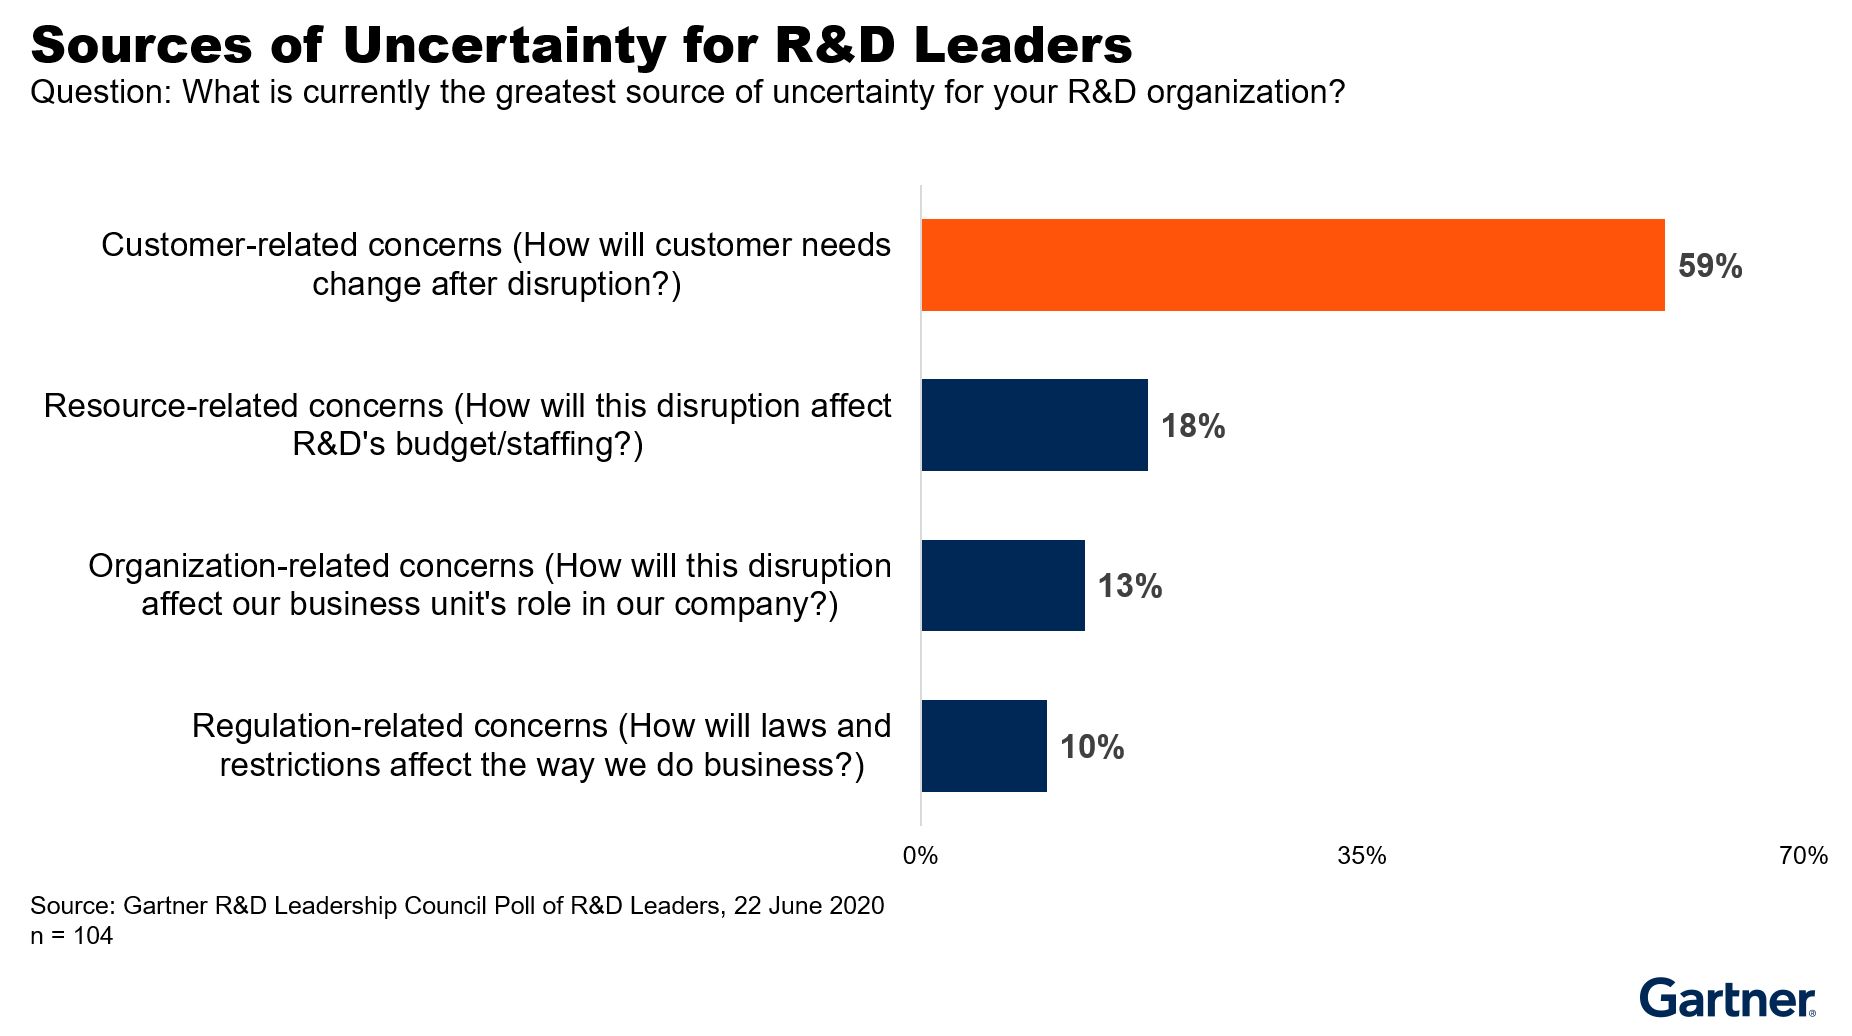 Figure 4. Source of Uncertainty for R&D Leaders